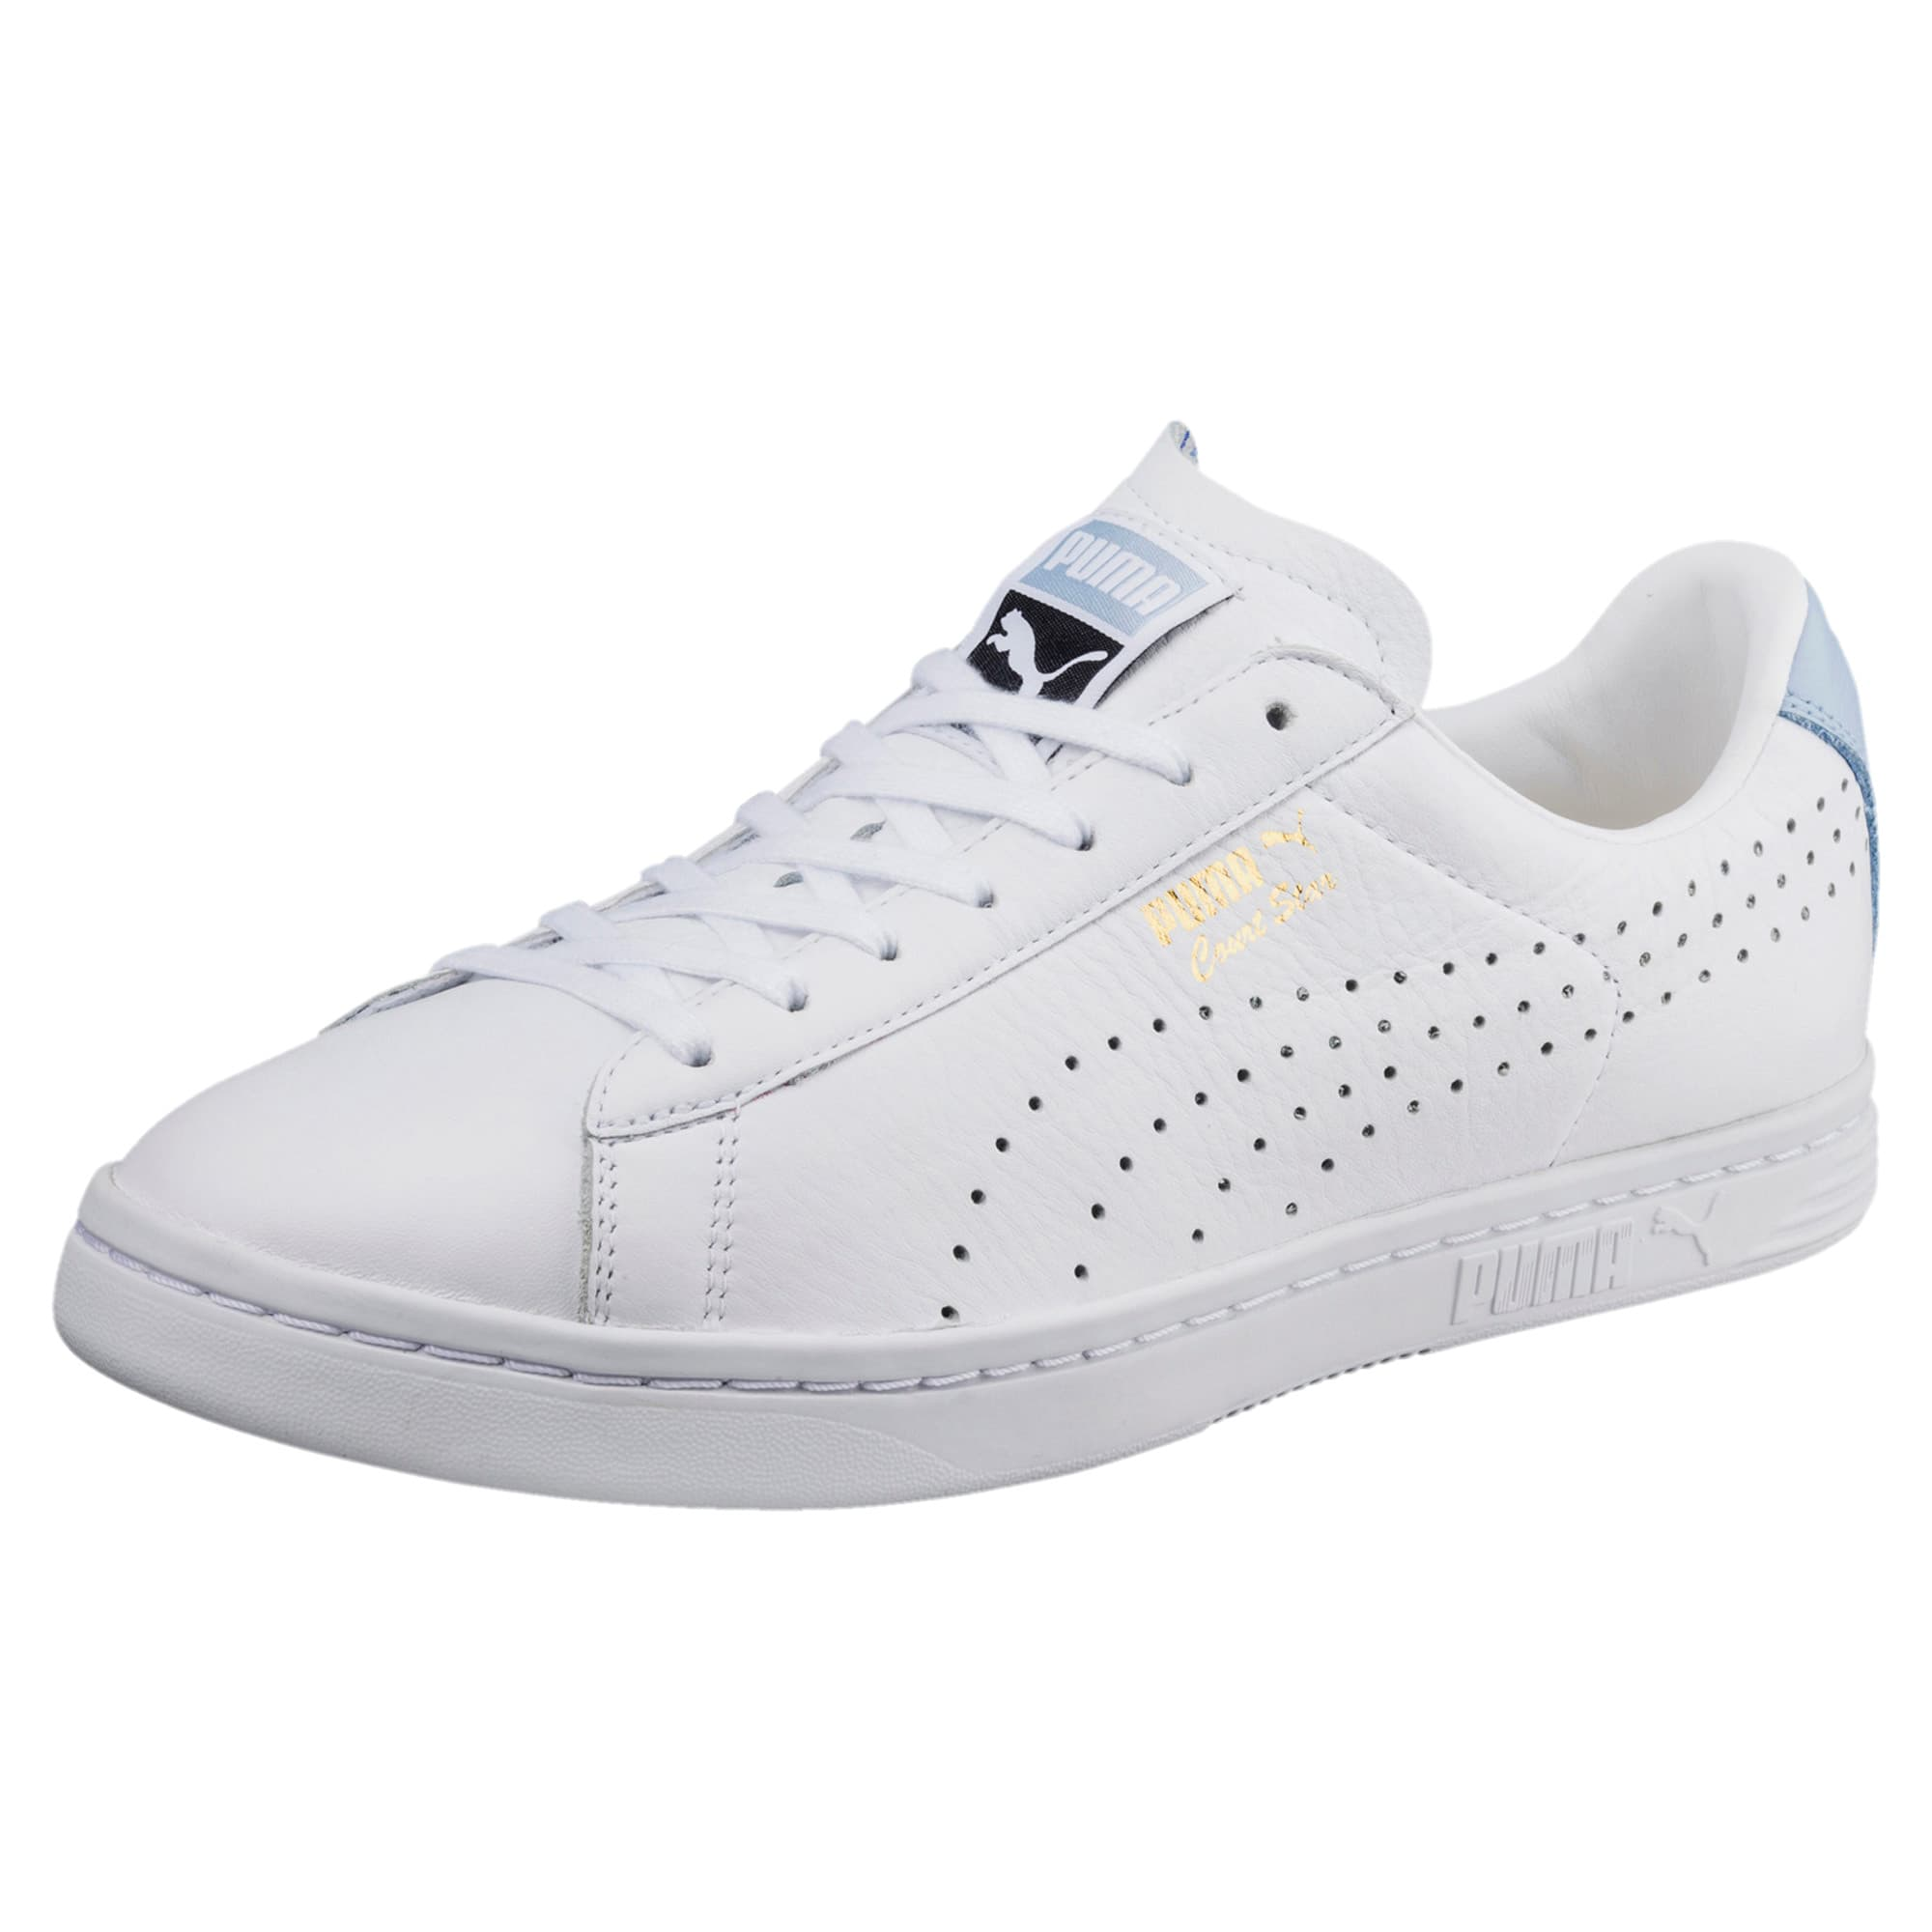 Details zu Puma Sneaker low Court Star NM 357883